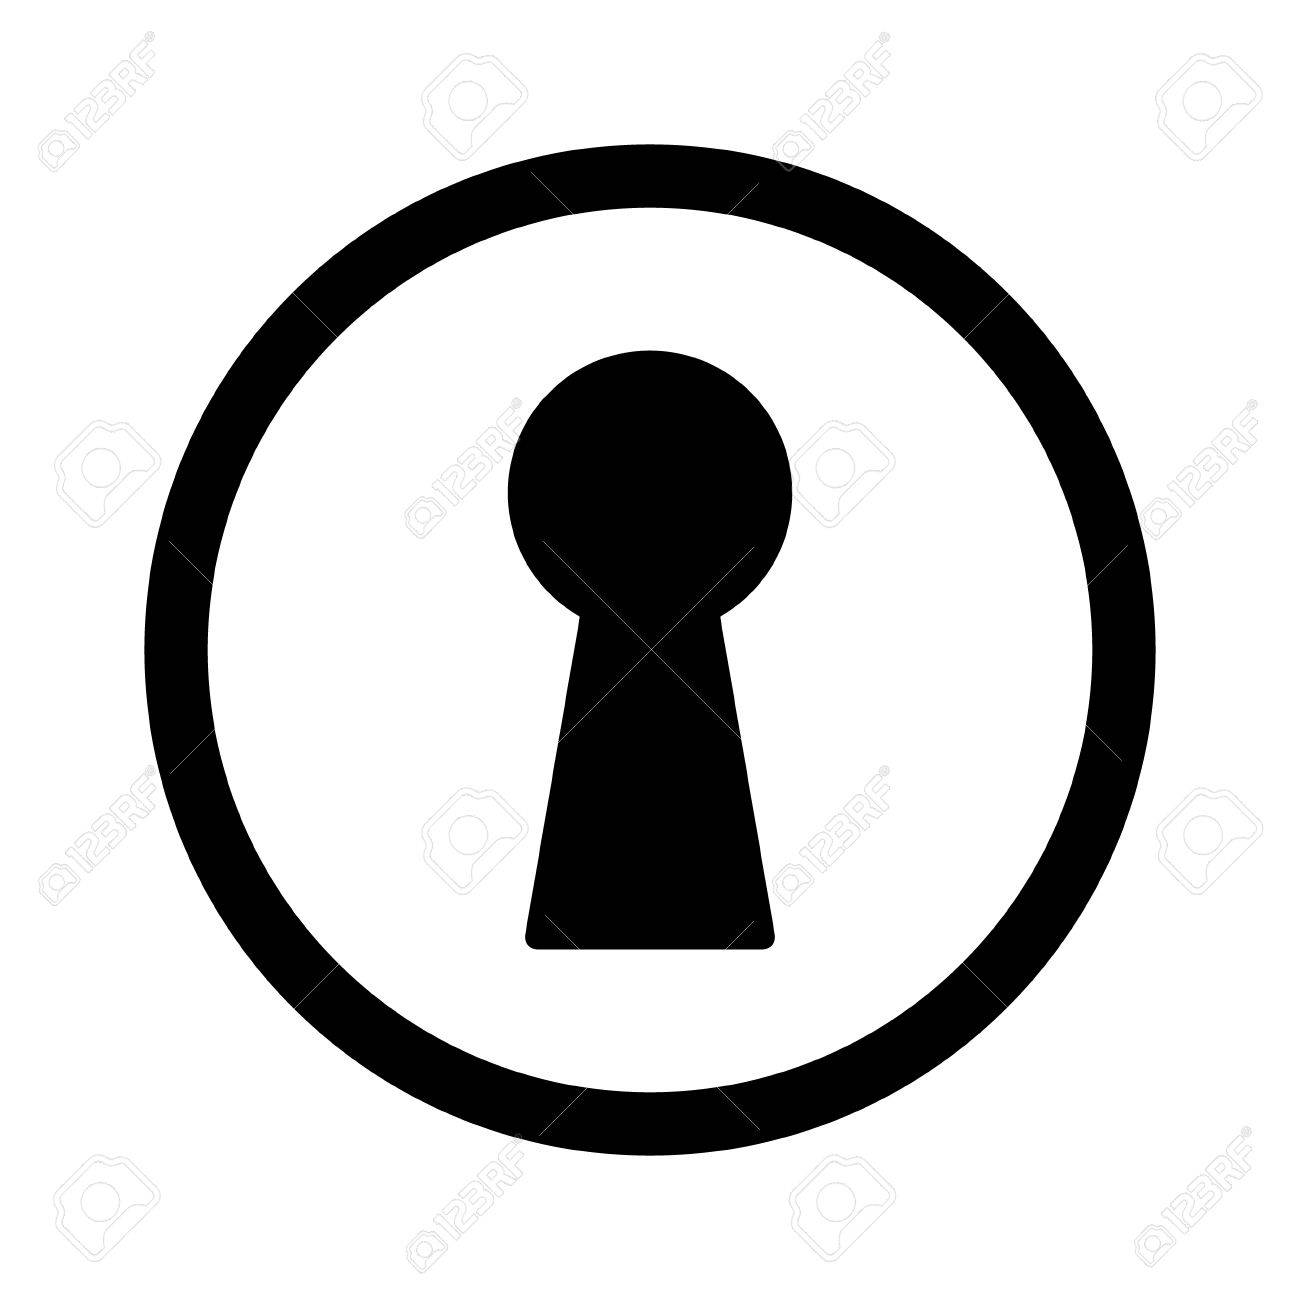 vintage door keyhole access line art icon for apps and websites rh 123rf com key in keyhole vector keyhole vector free download